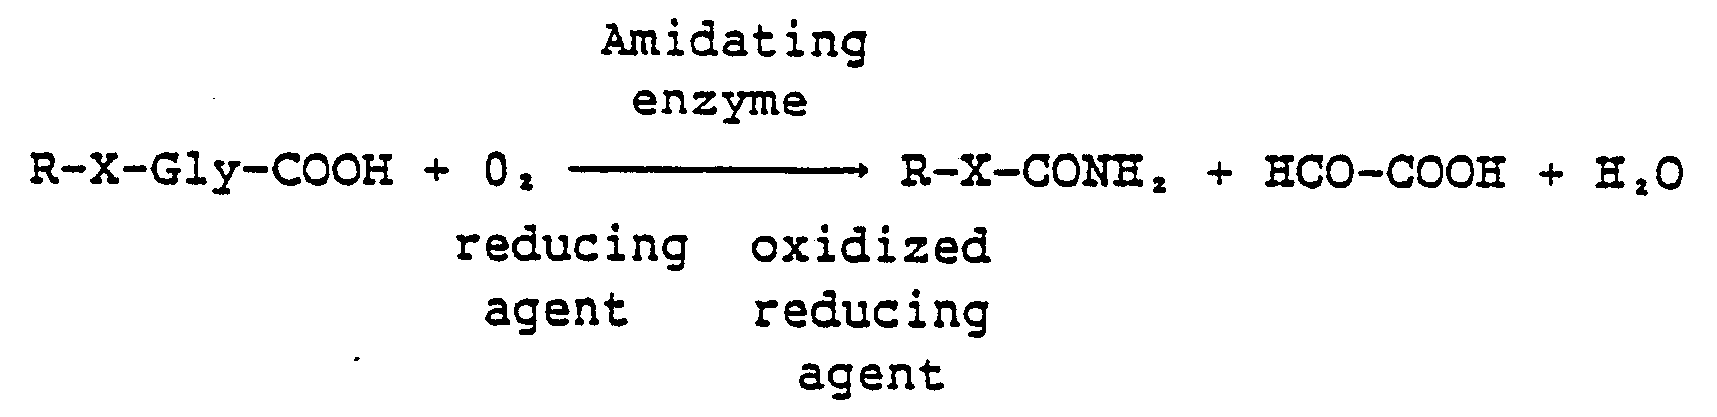 Peptidyl amidating enzyme definition